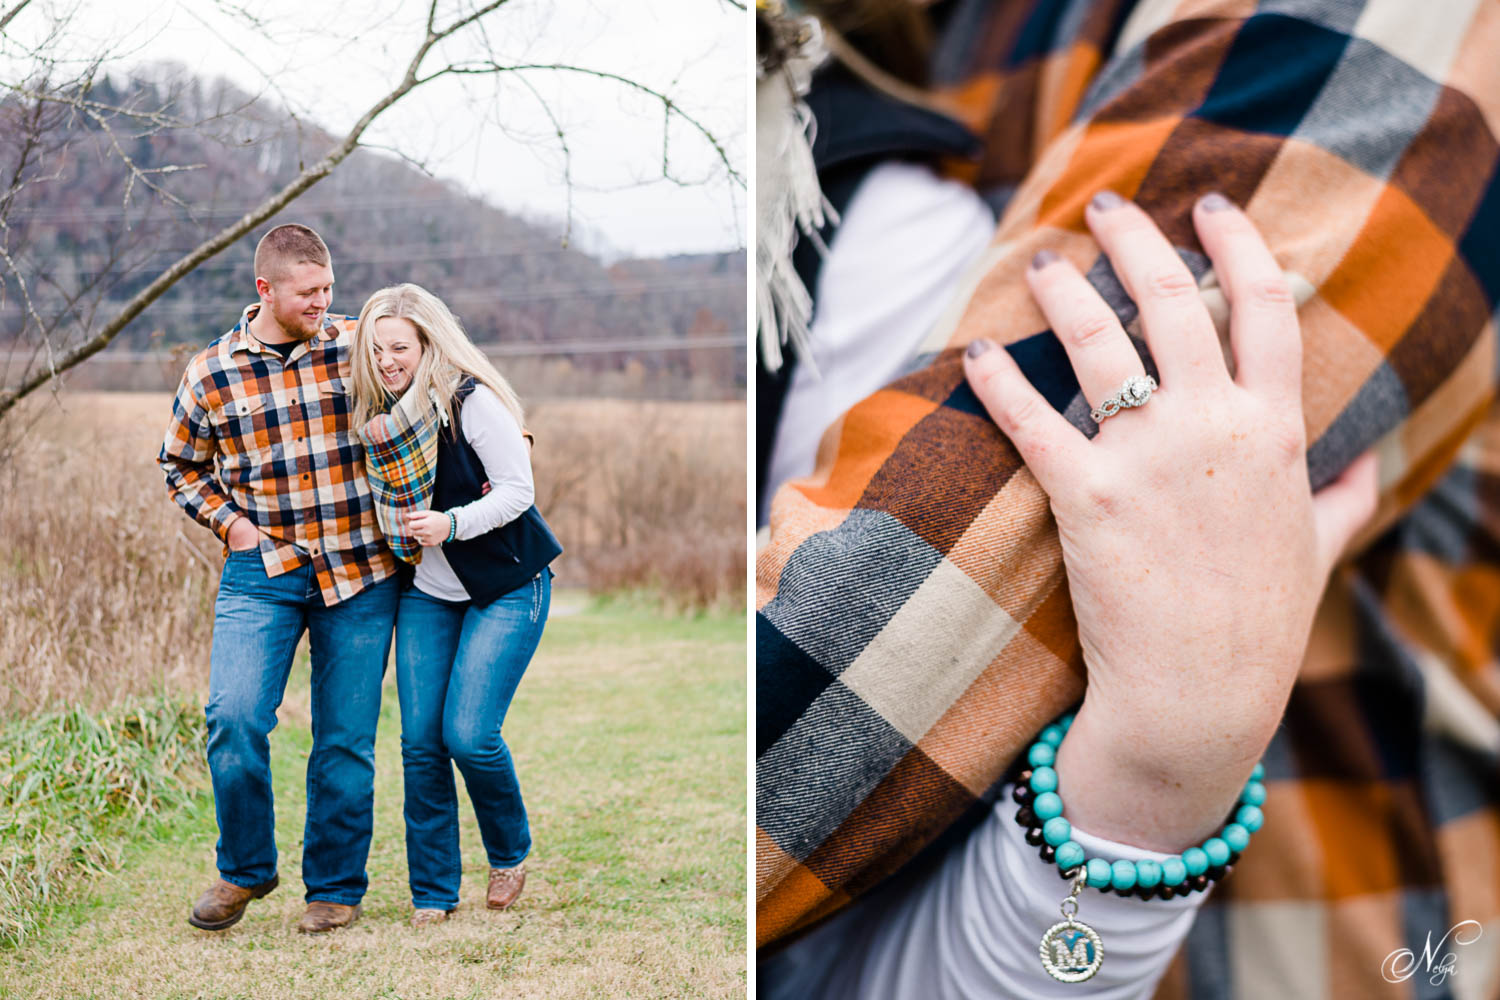 couple walking and close up of engagement ring on hand and turquoise monogramed bracelet